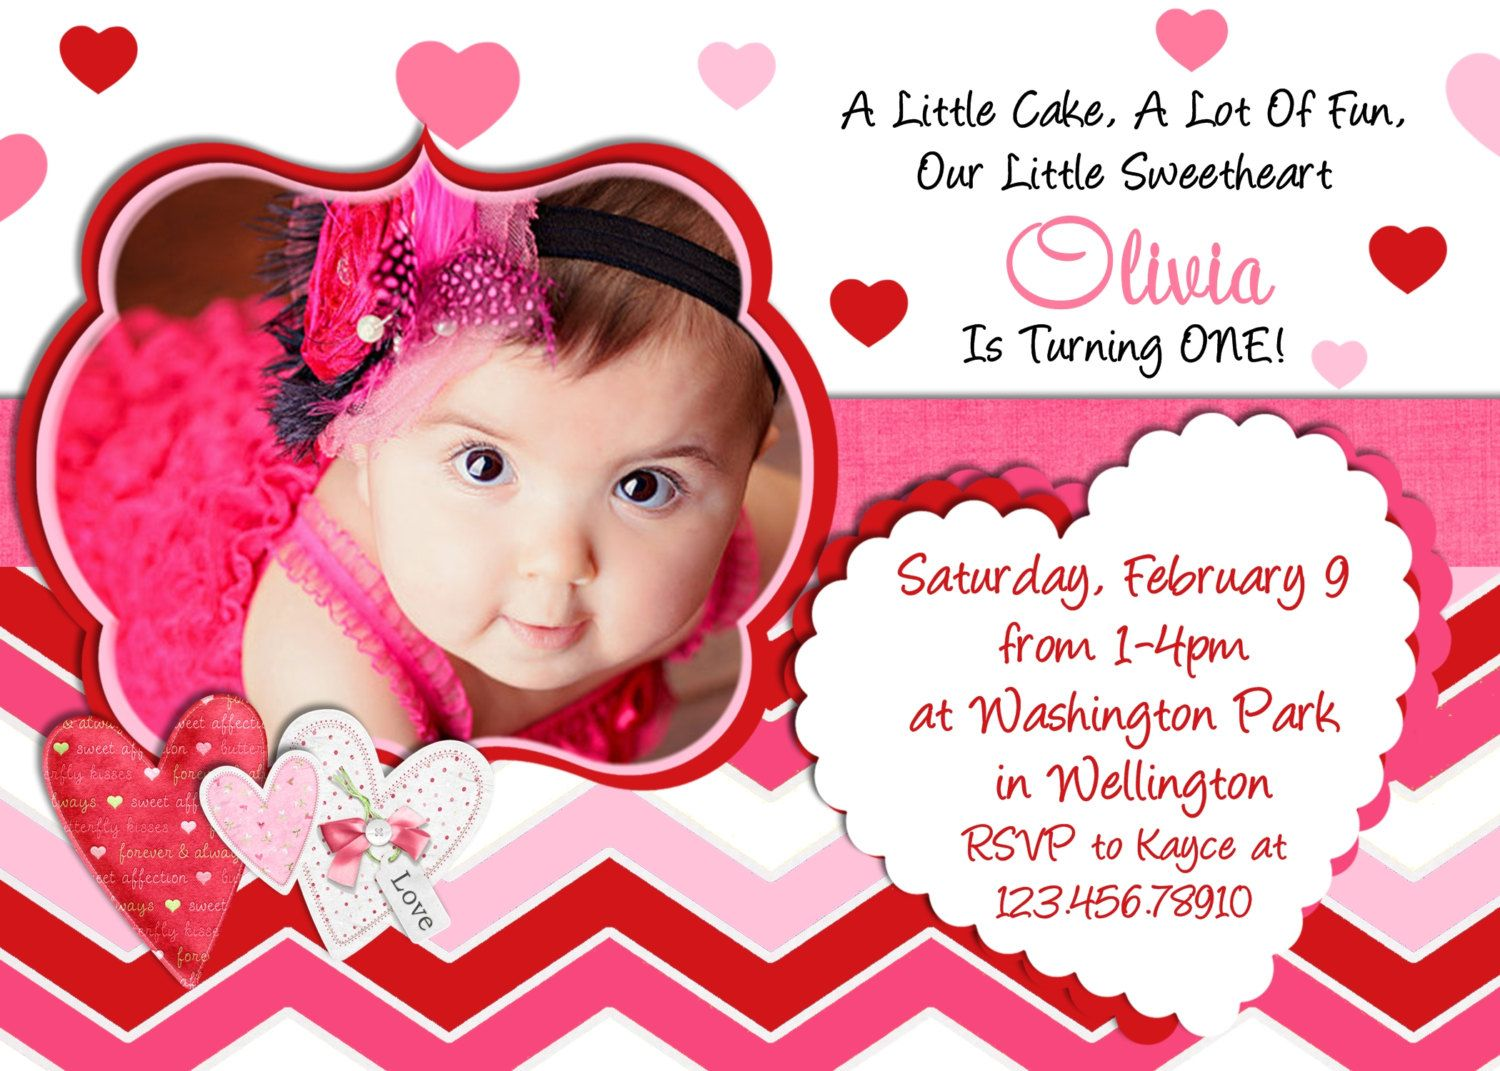 Invitation Birthday Cards Designs Birthday Cards Pinterest - First birthday invitations girl online